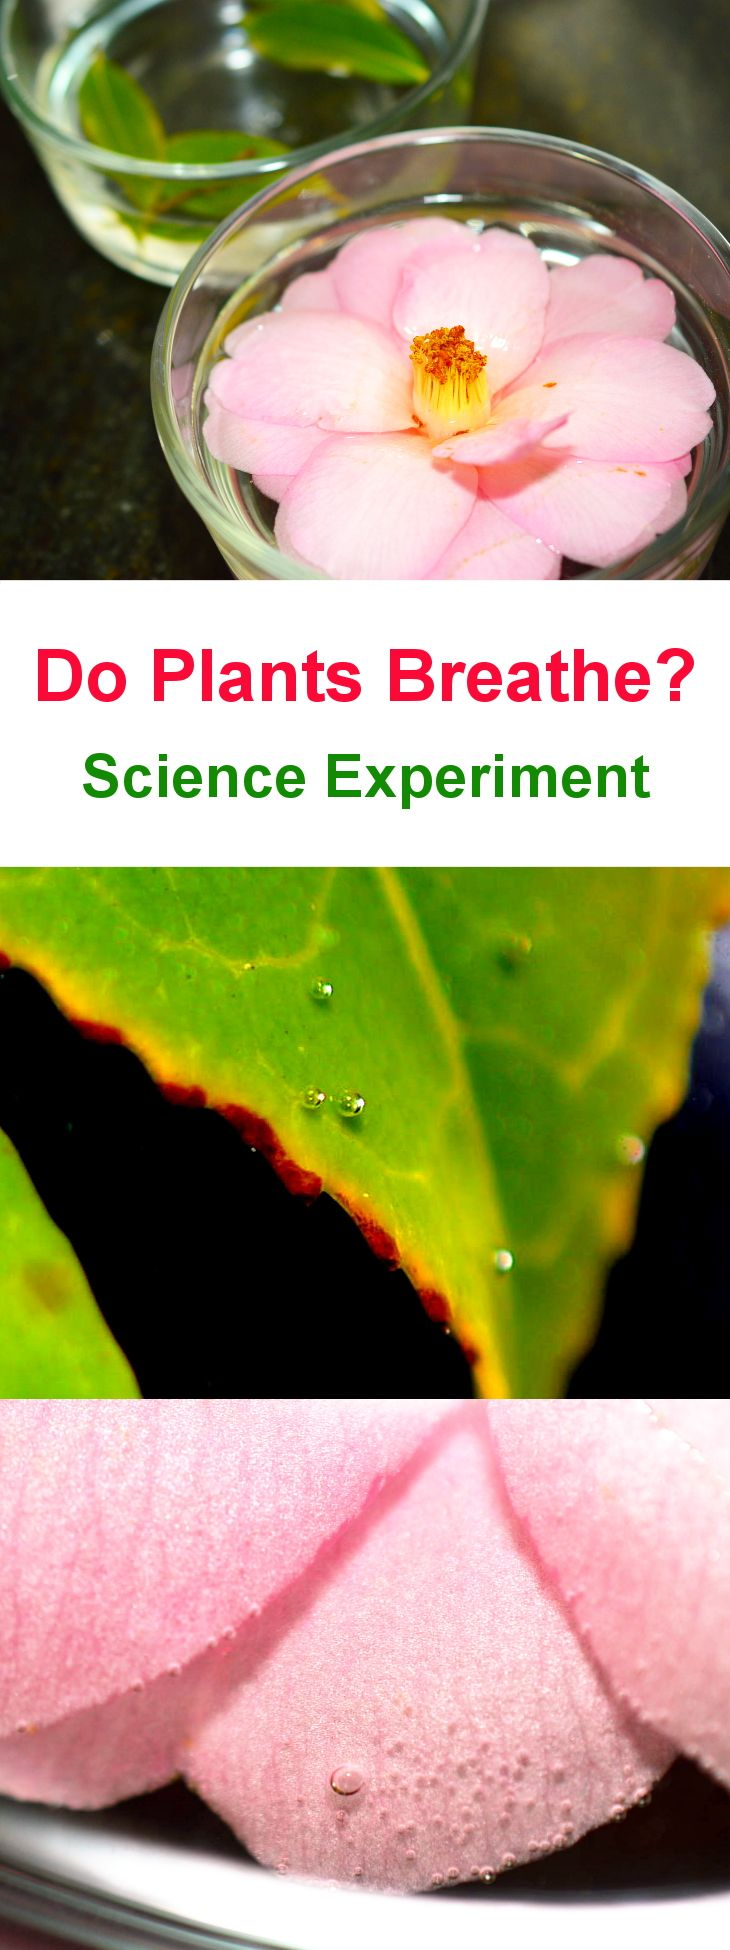 Photosynthesis And Respiration In Plants Science